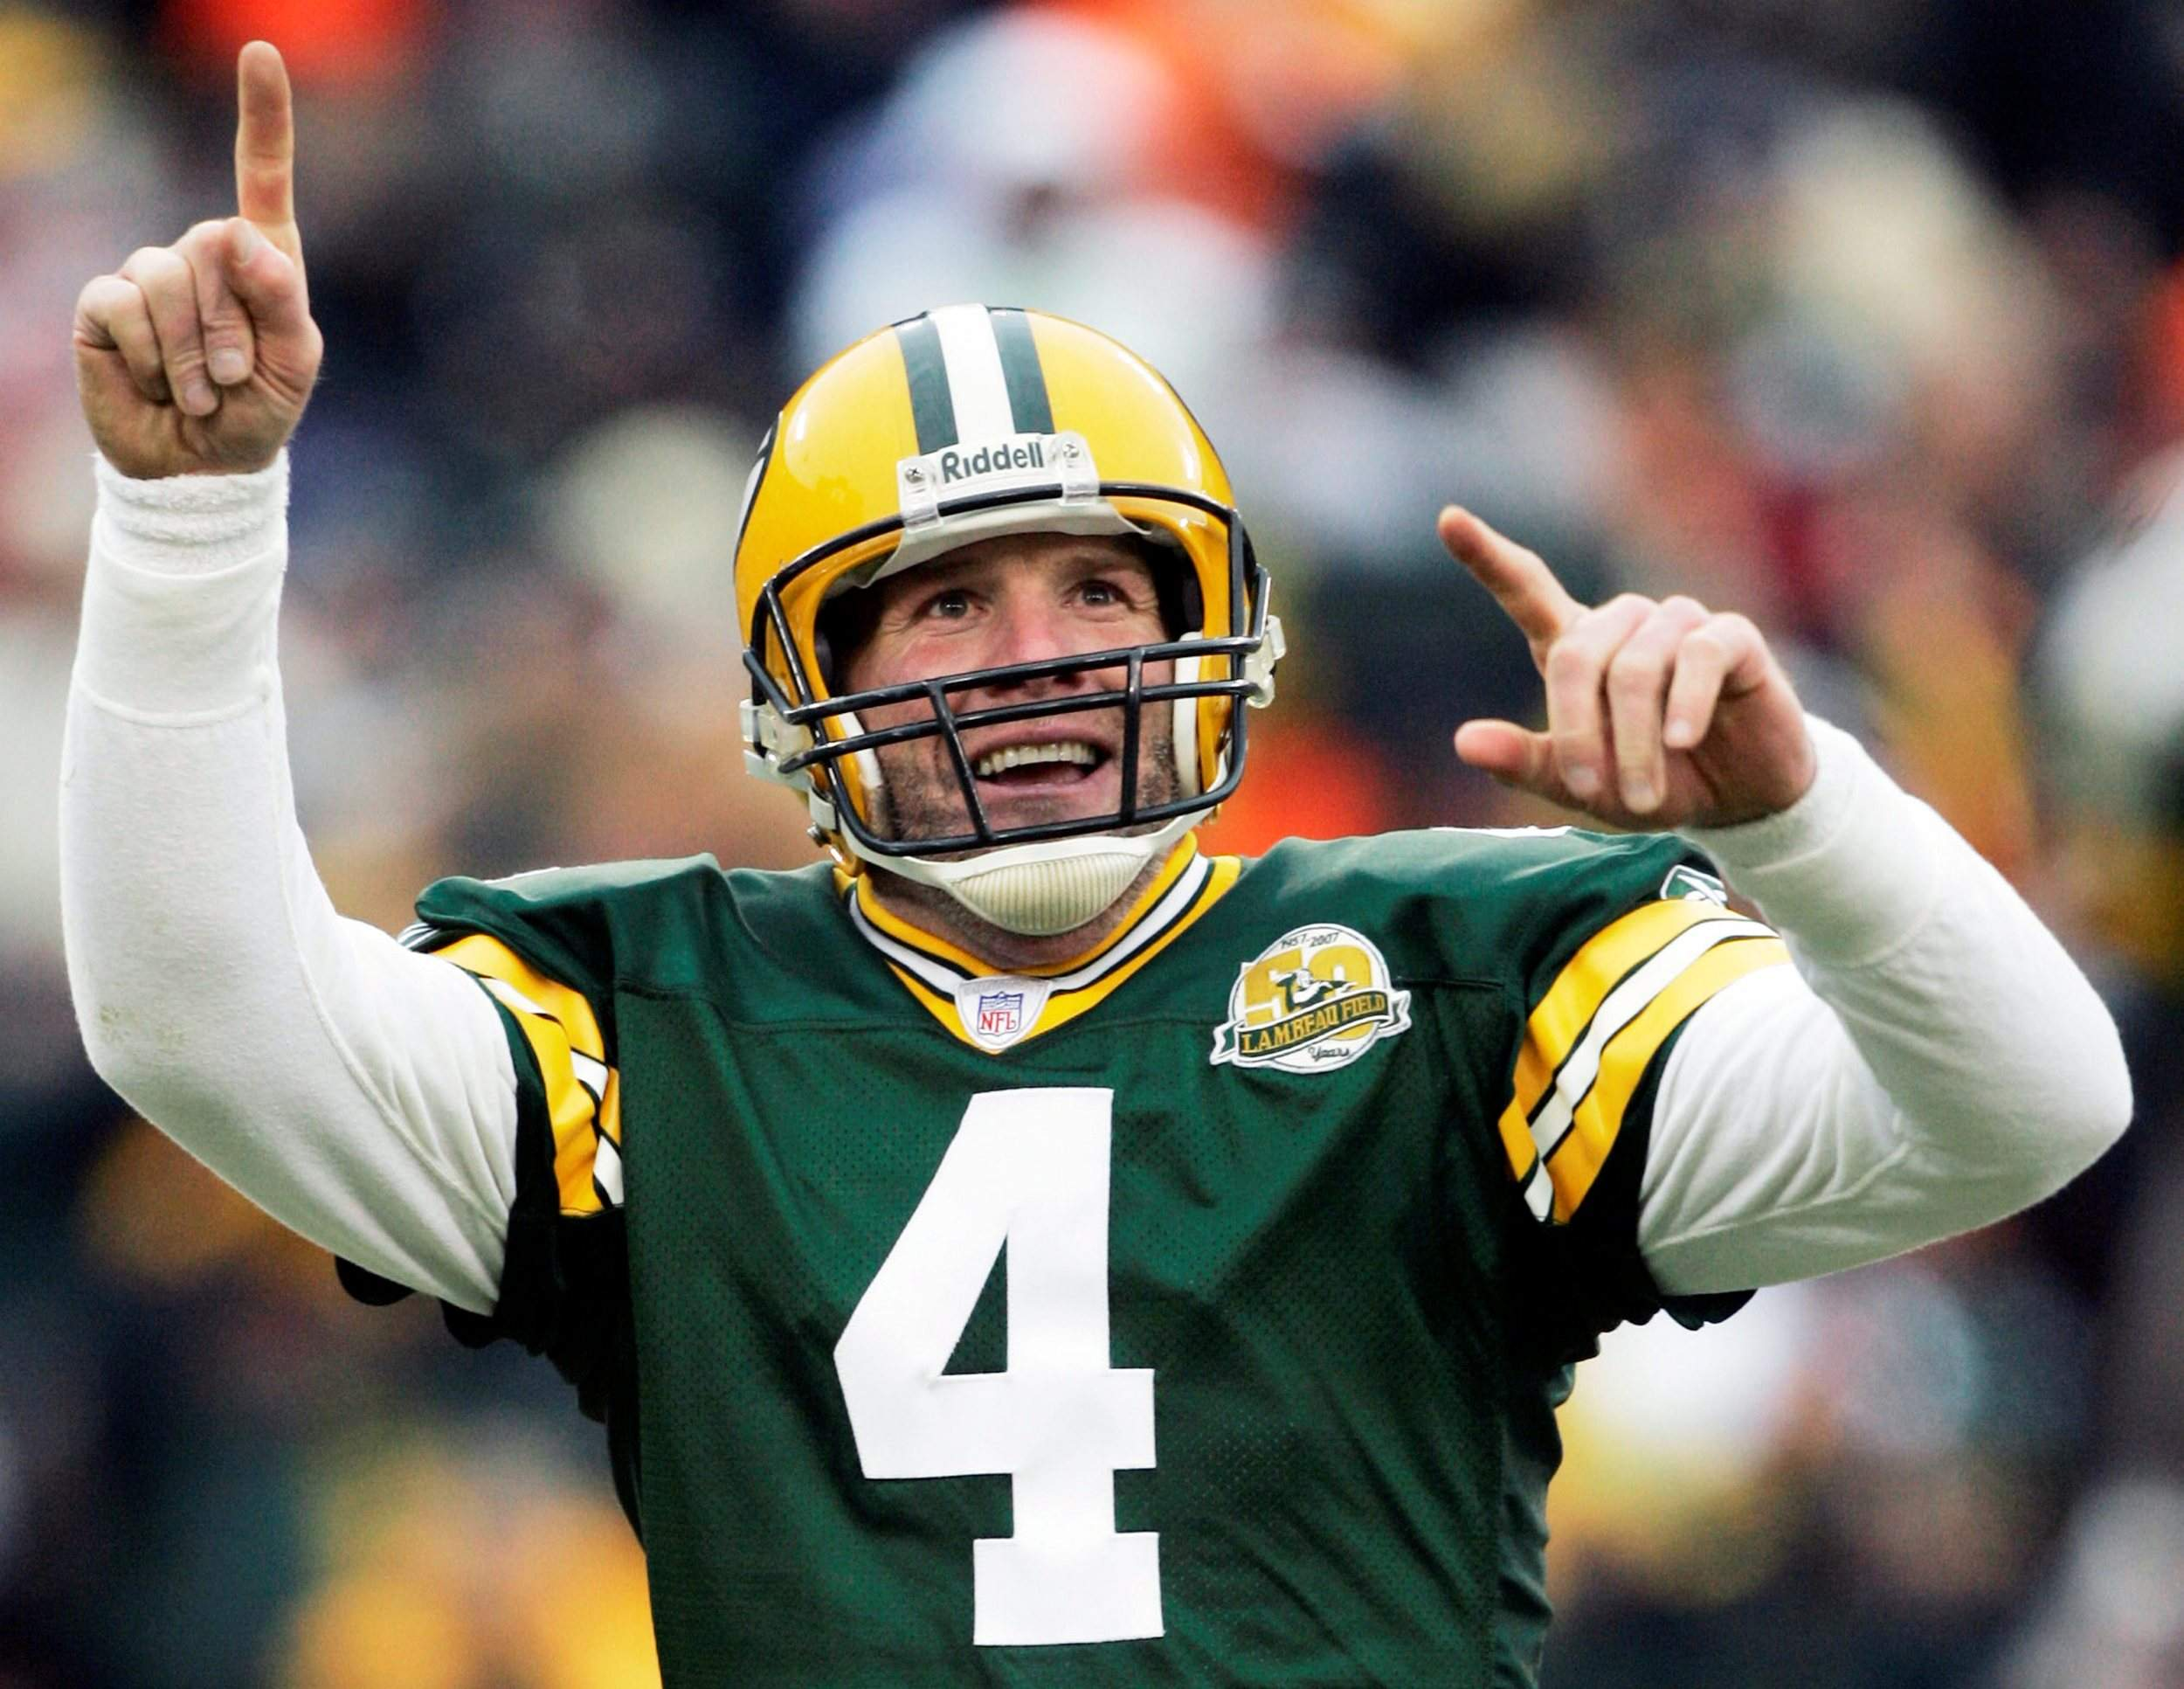 brett favre cringes when he sees youth football brett favre said he worries about his future health after taking so many hits during a 20 year nfl career